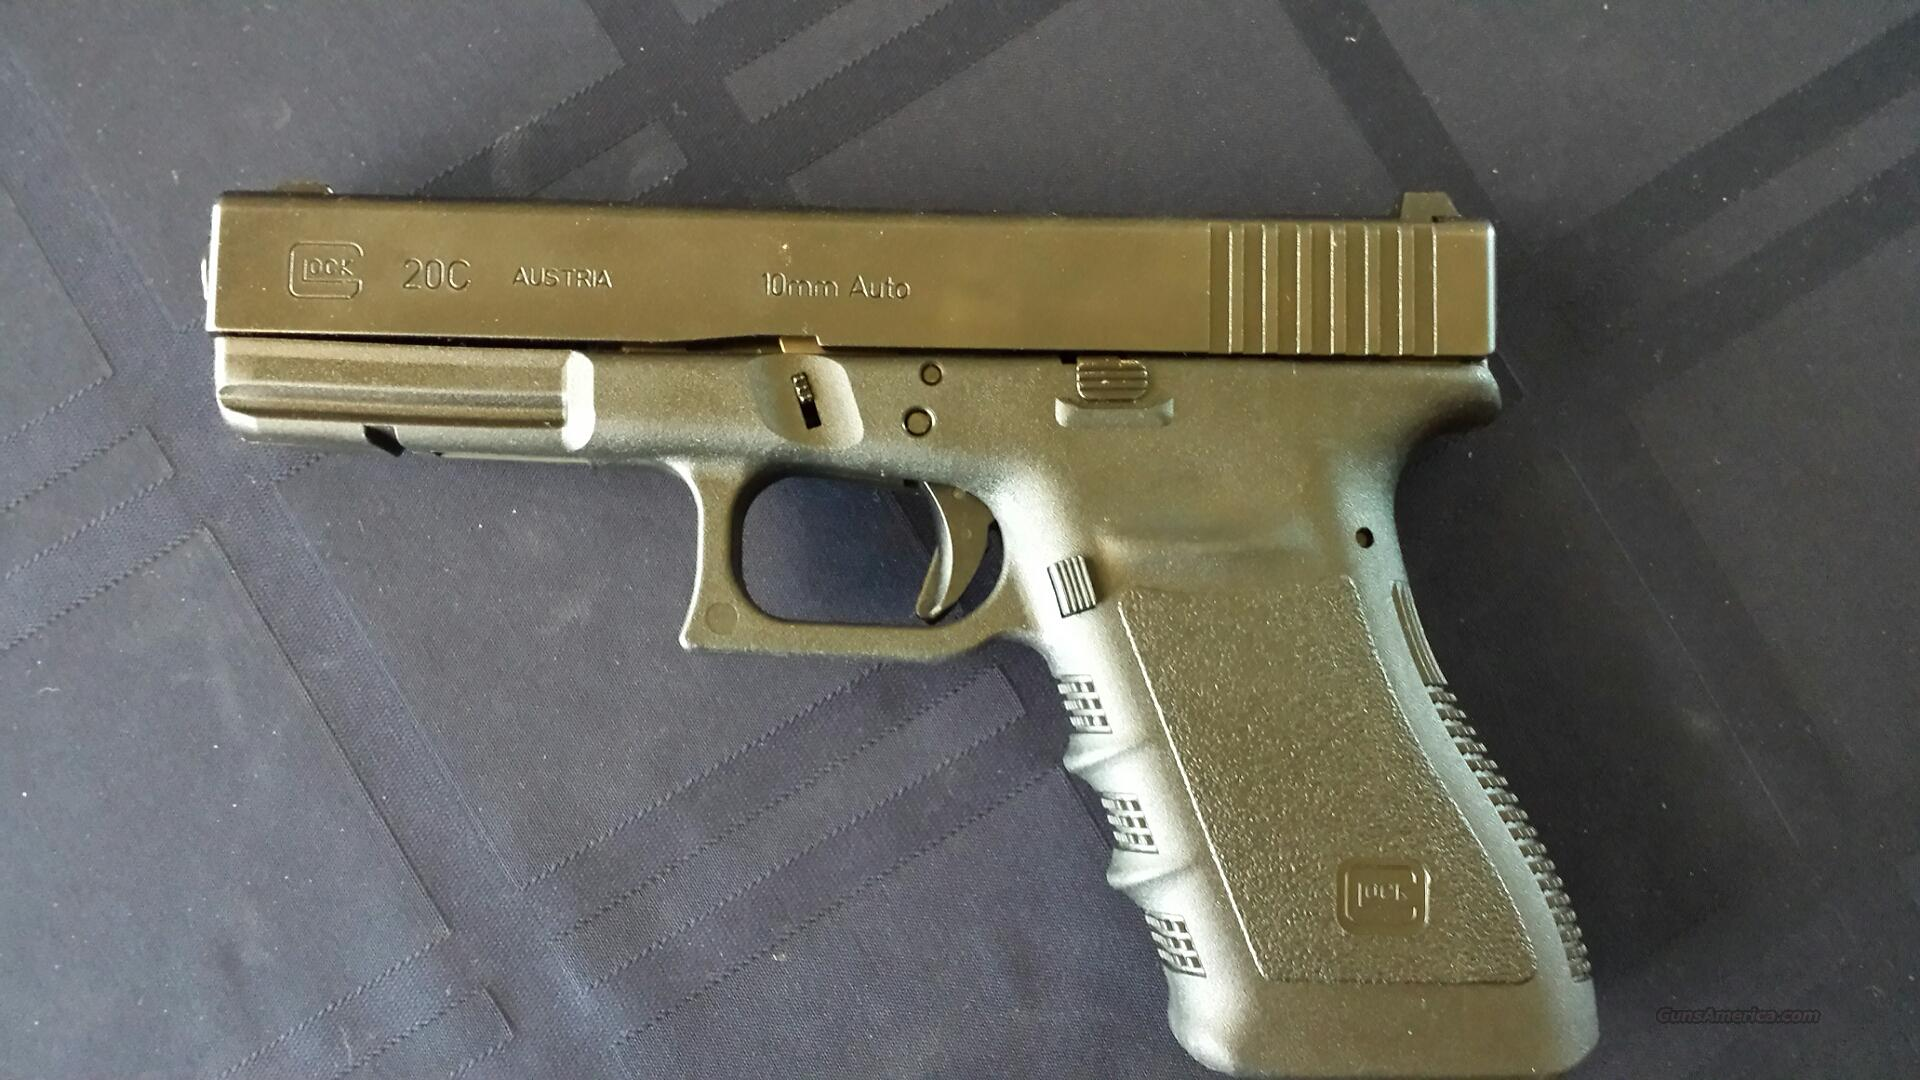 Glock 20C 10MM LIKE NEW  Guns > Pistols > Glock Pistols > 20/21